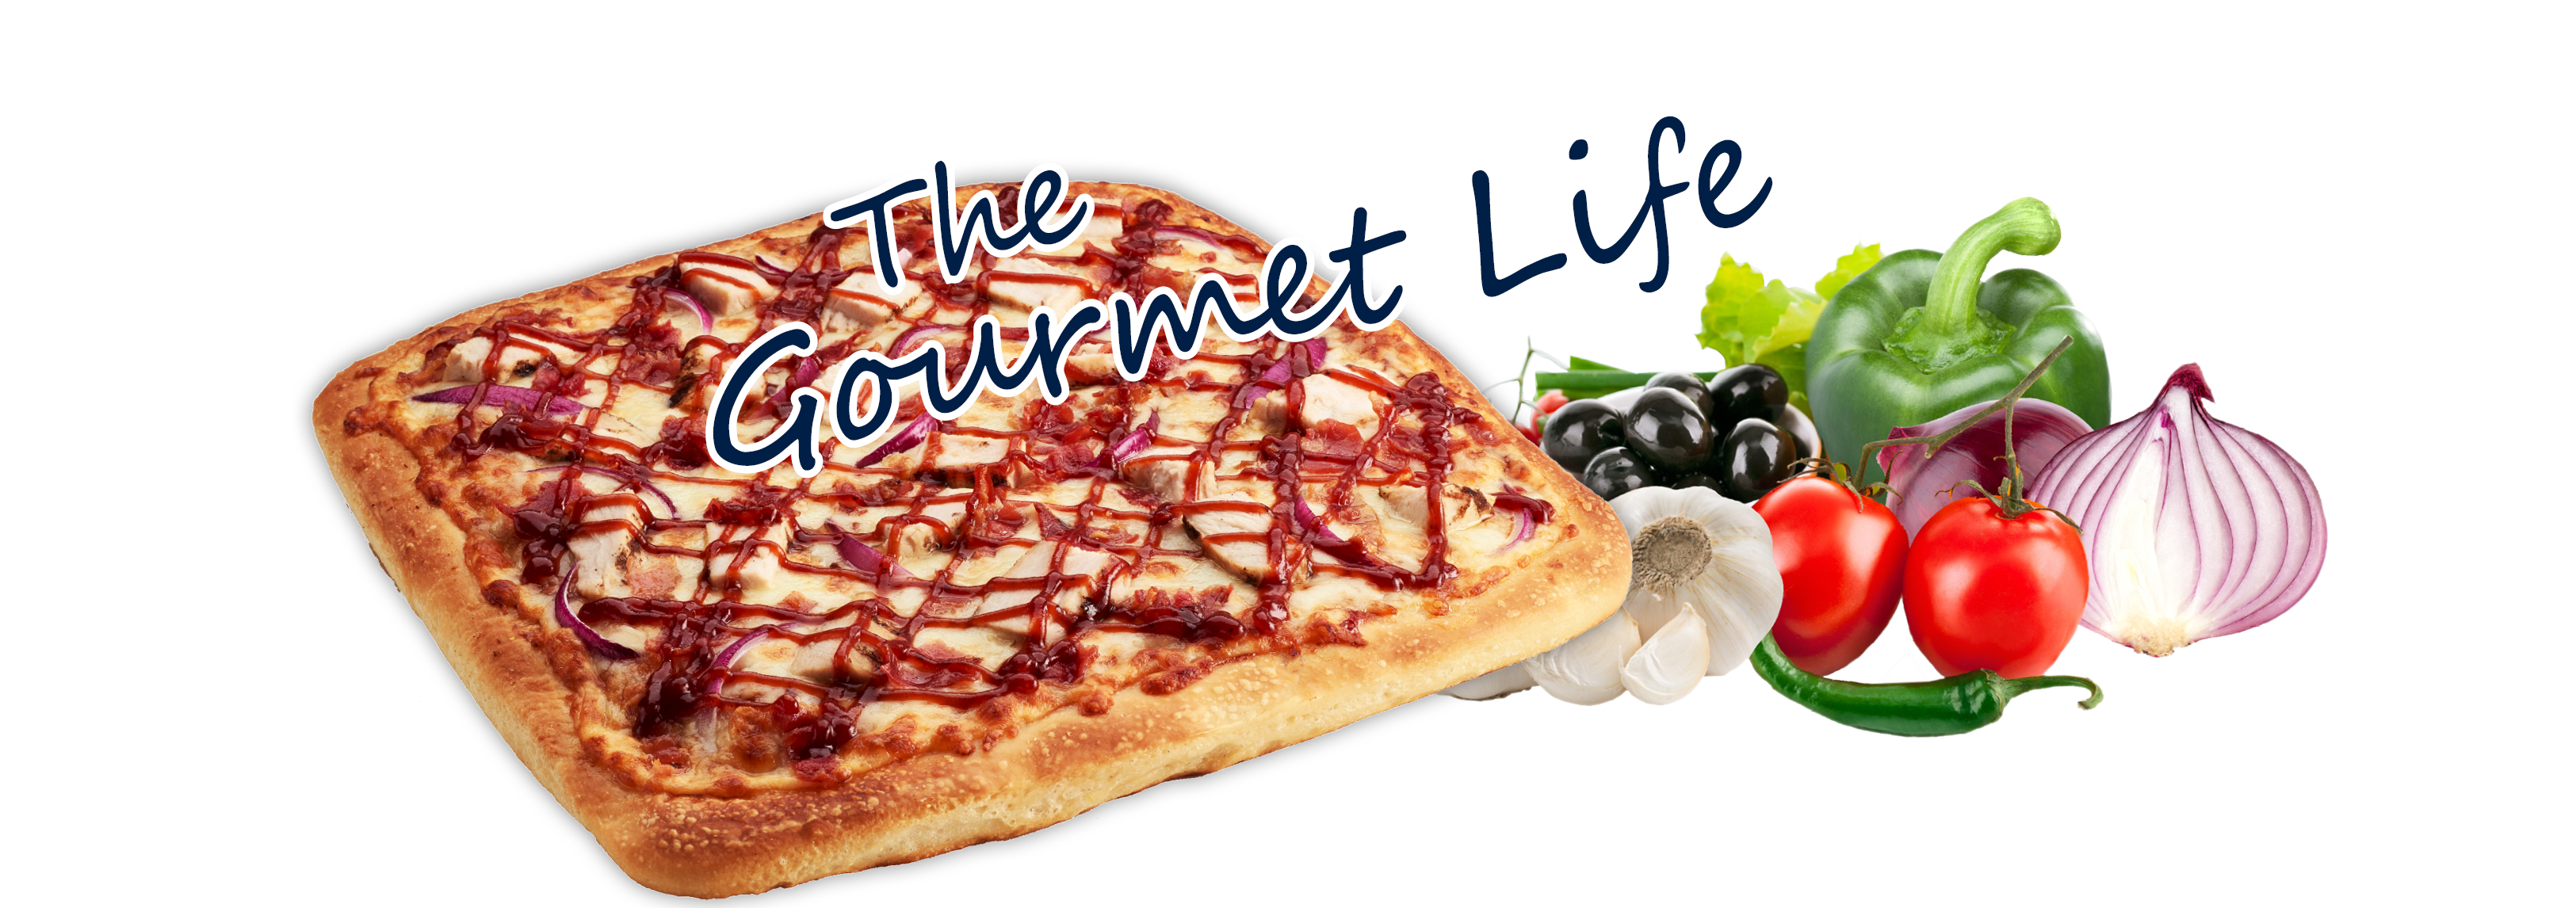 cottage inn pizza has been offering gourmet pizza salads and subs rh pinterest co uk cottage inn catering prices cottage inn saline catering